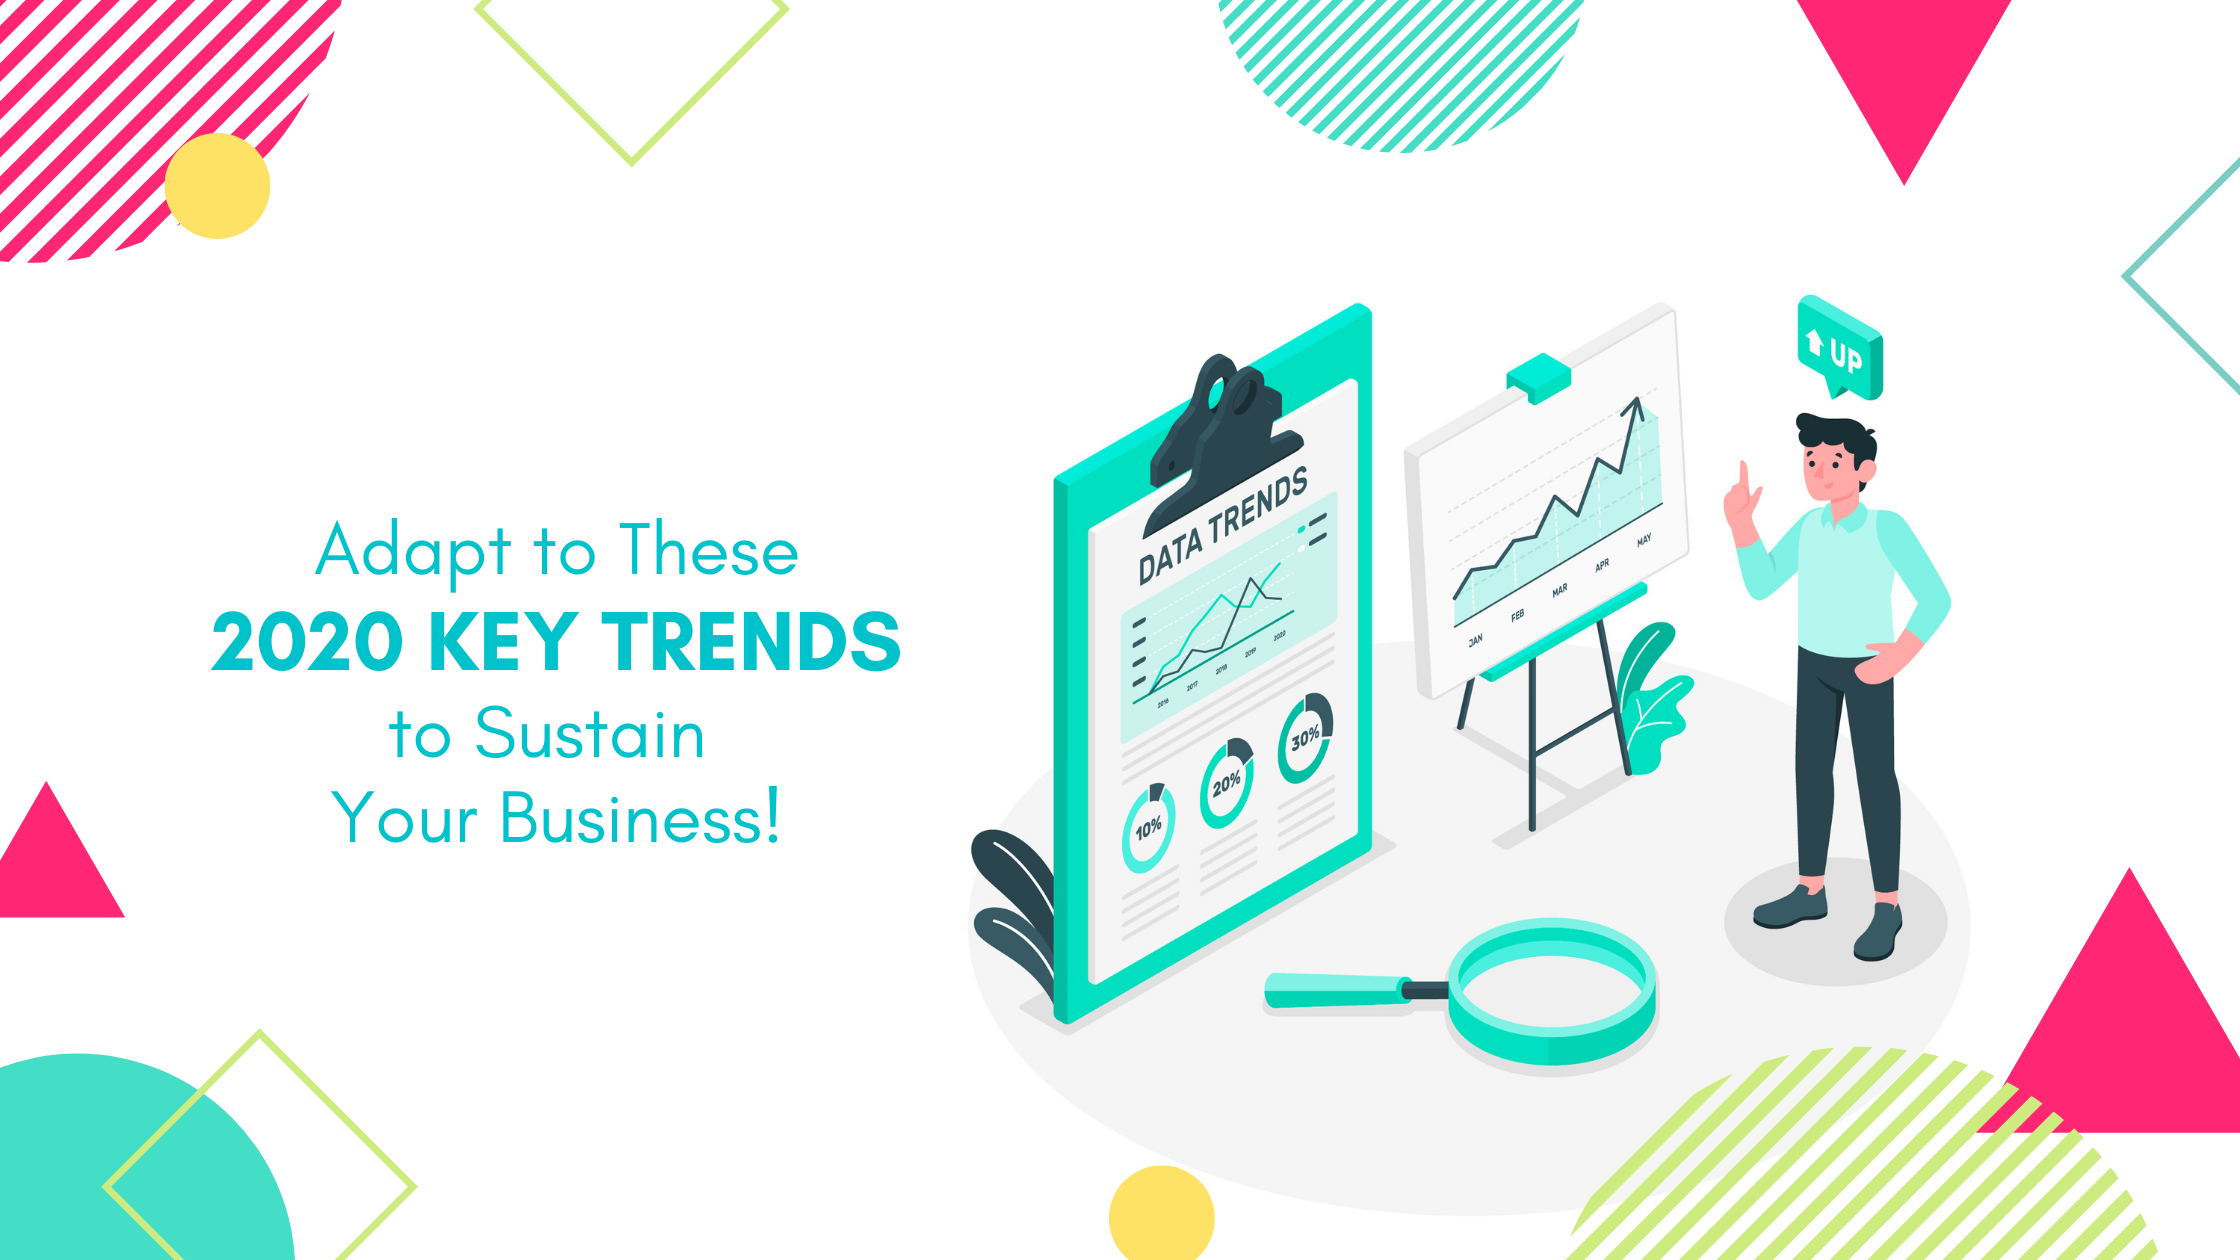 Adapt to These Key Trends to Sustain Your Business!